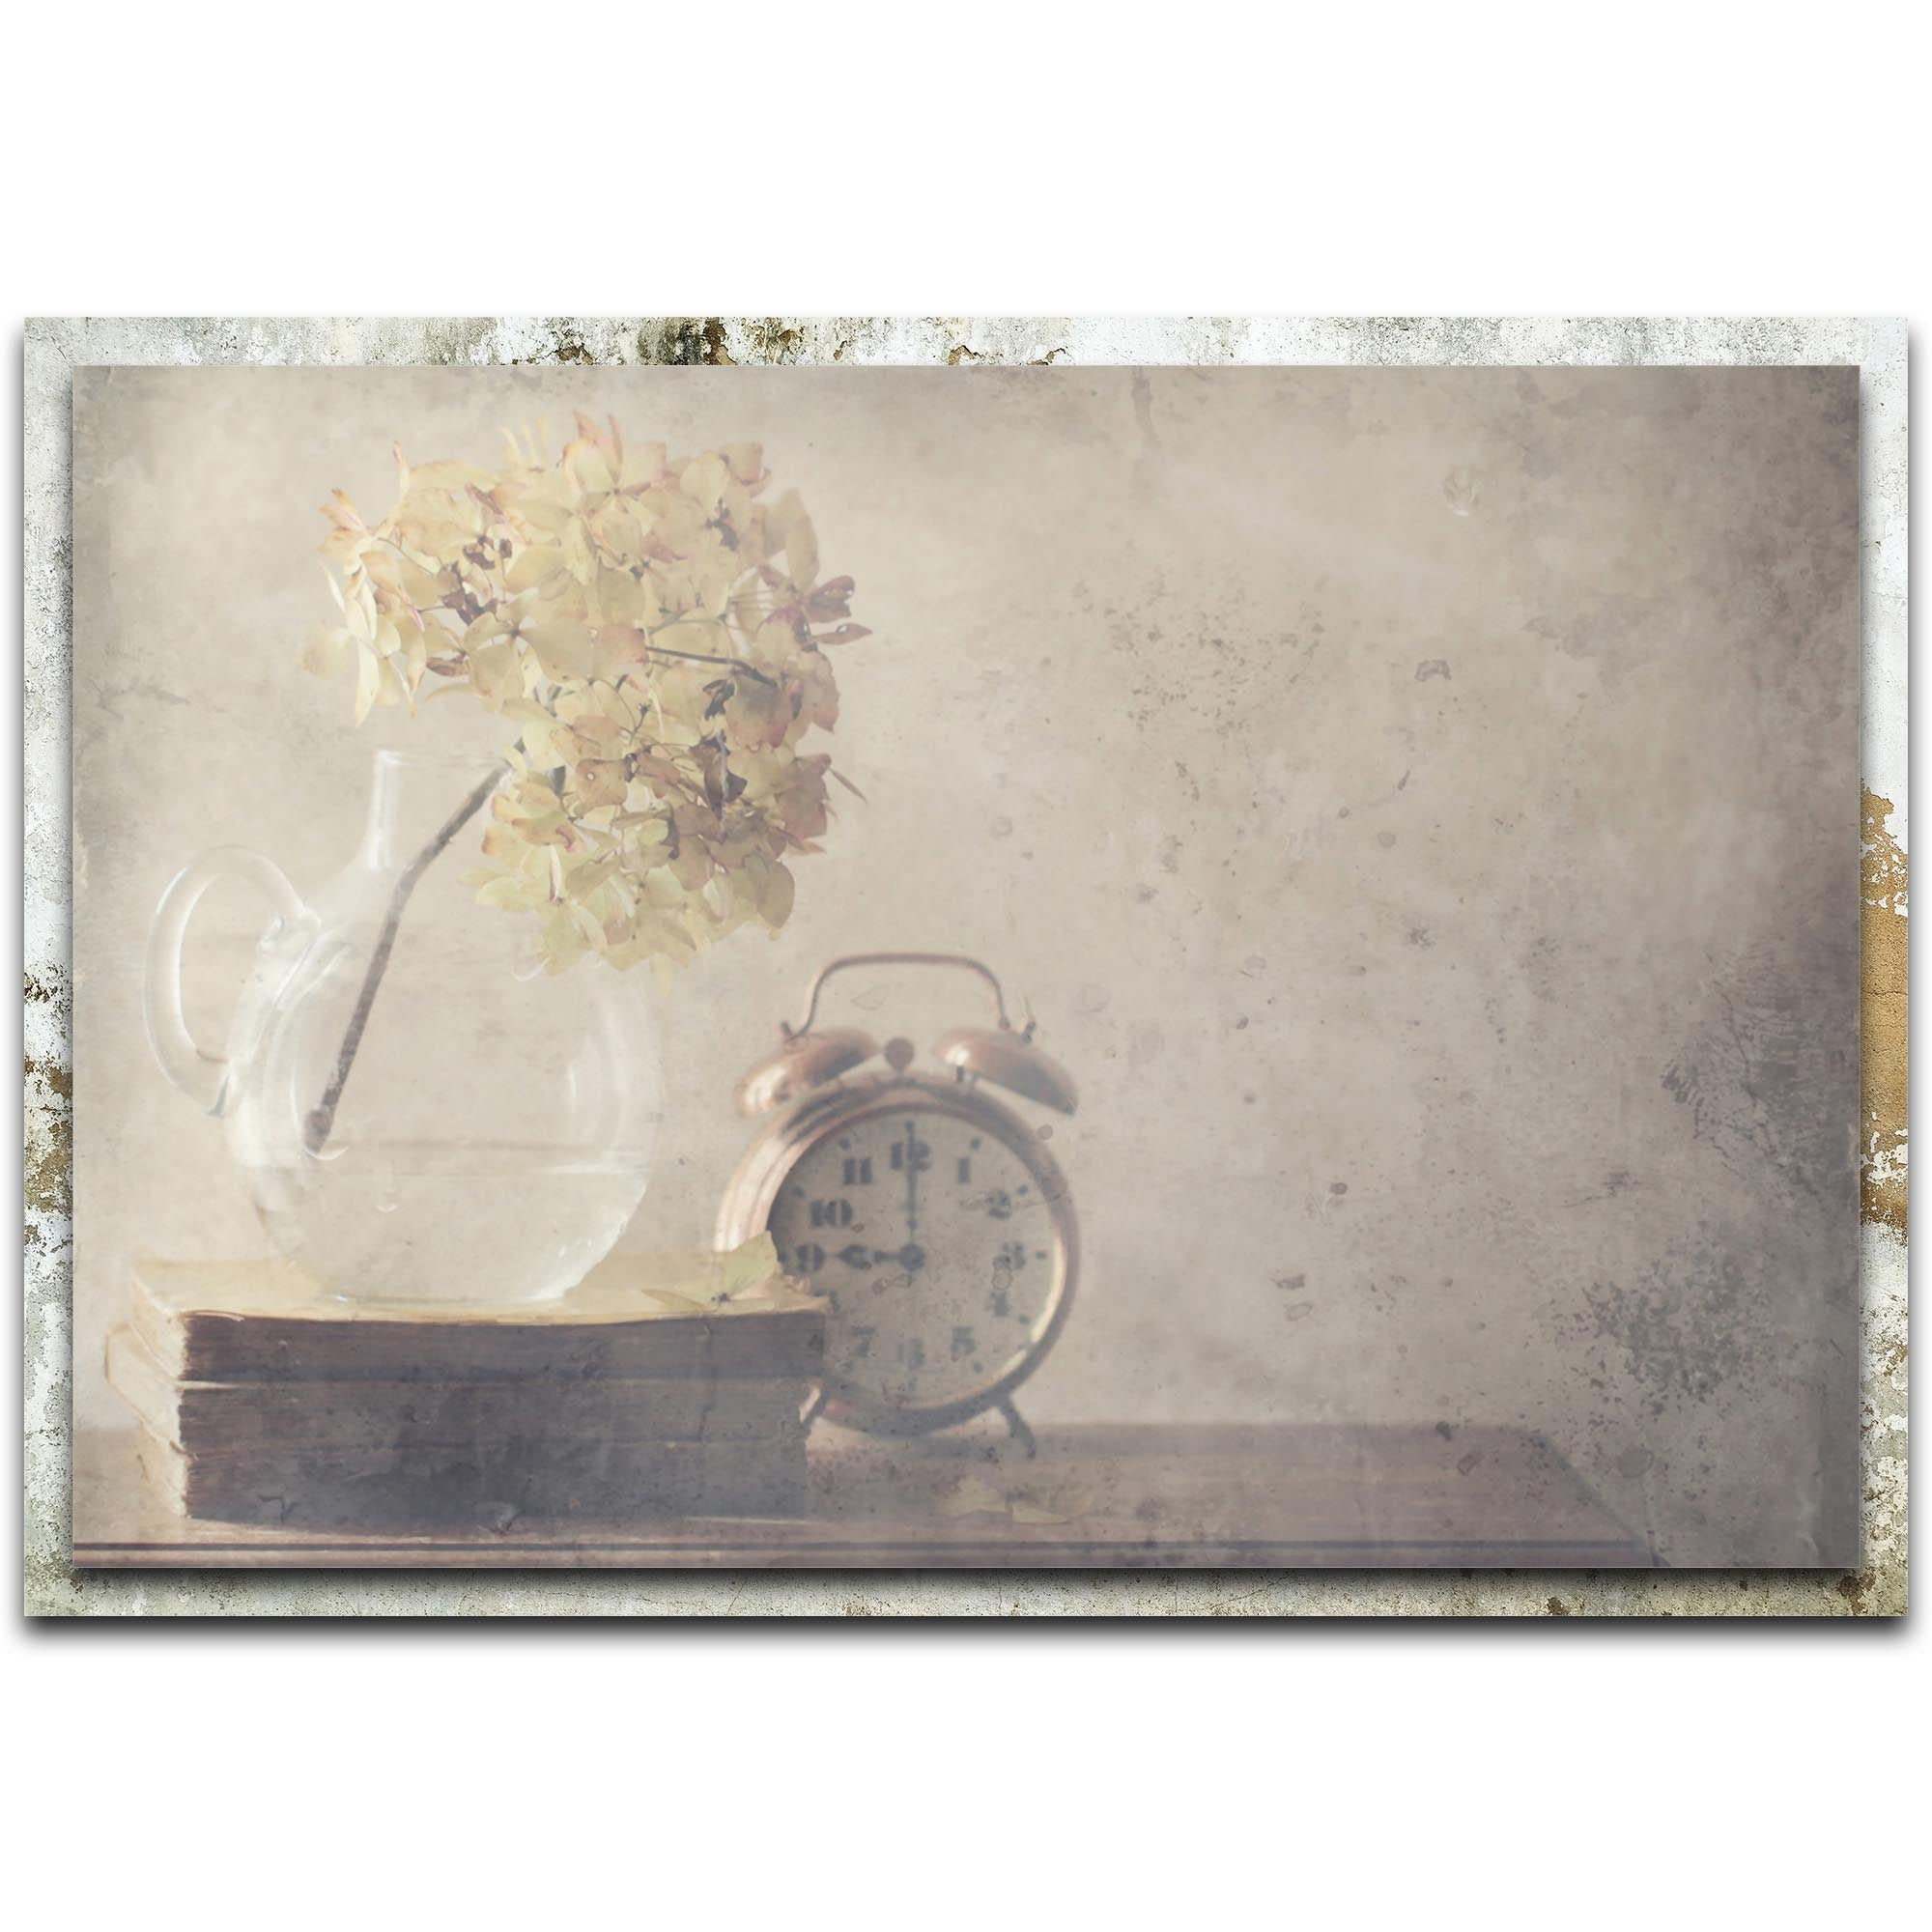 Disillusionment of Nine O'Clock by Delphine Devos - Modern Farmhouse Floral on Metal